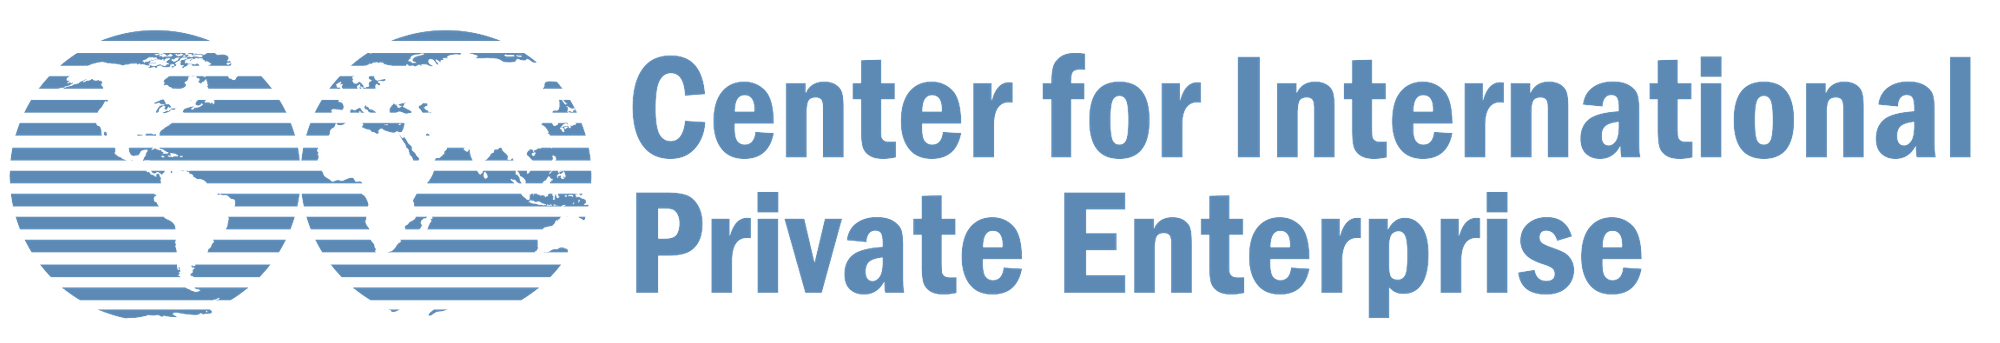 Center for International Private Enterprise